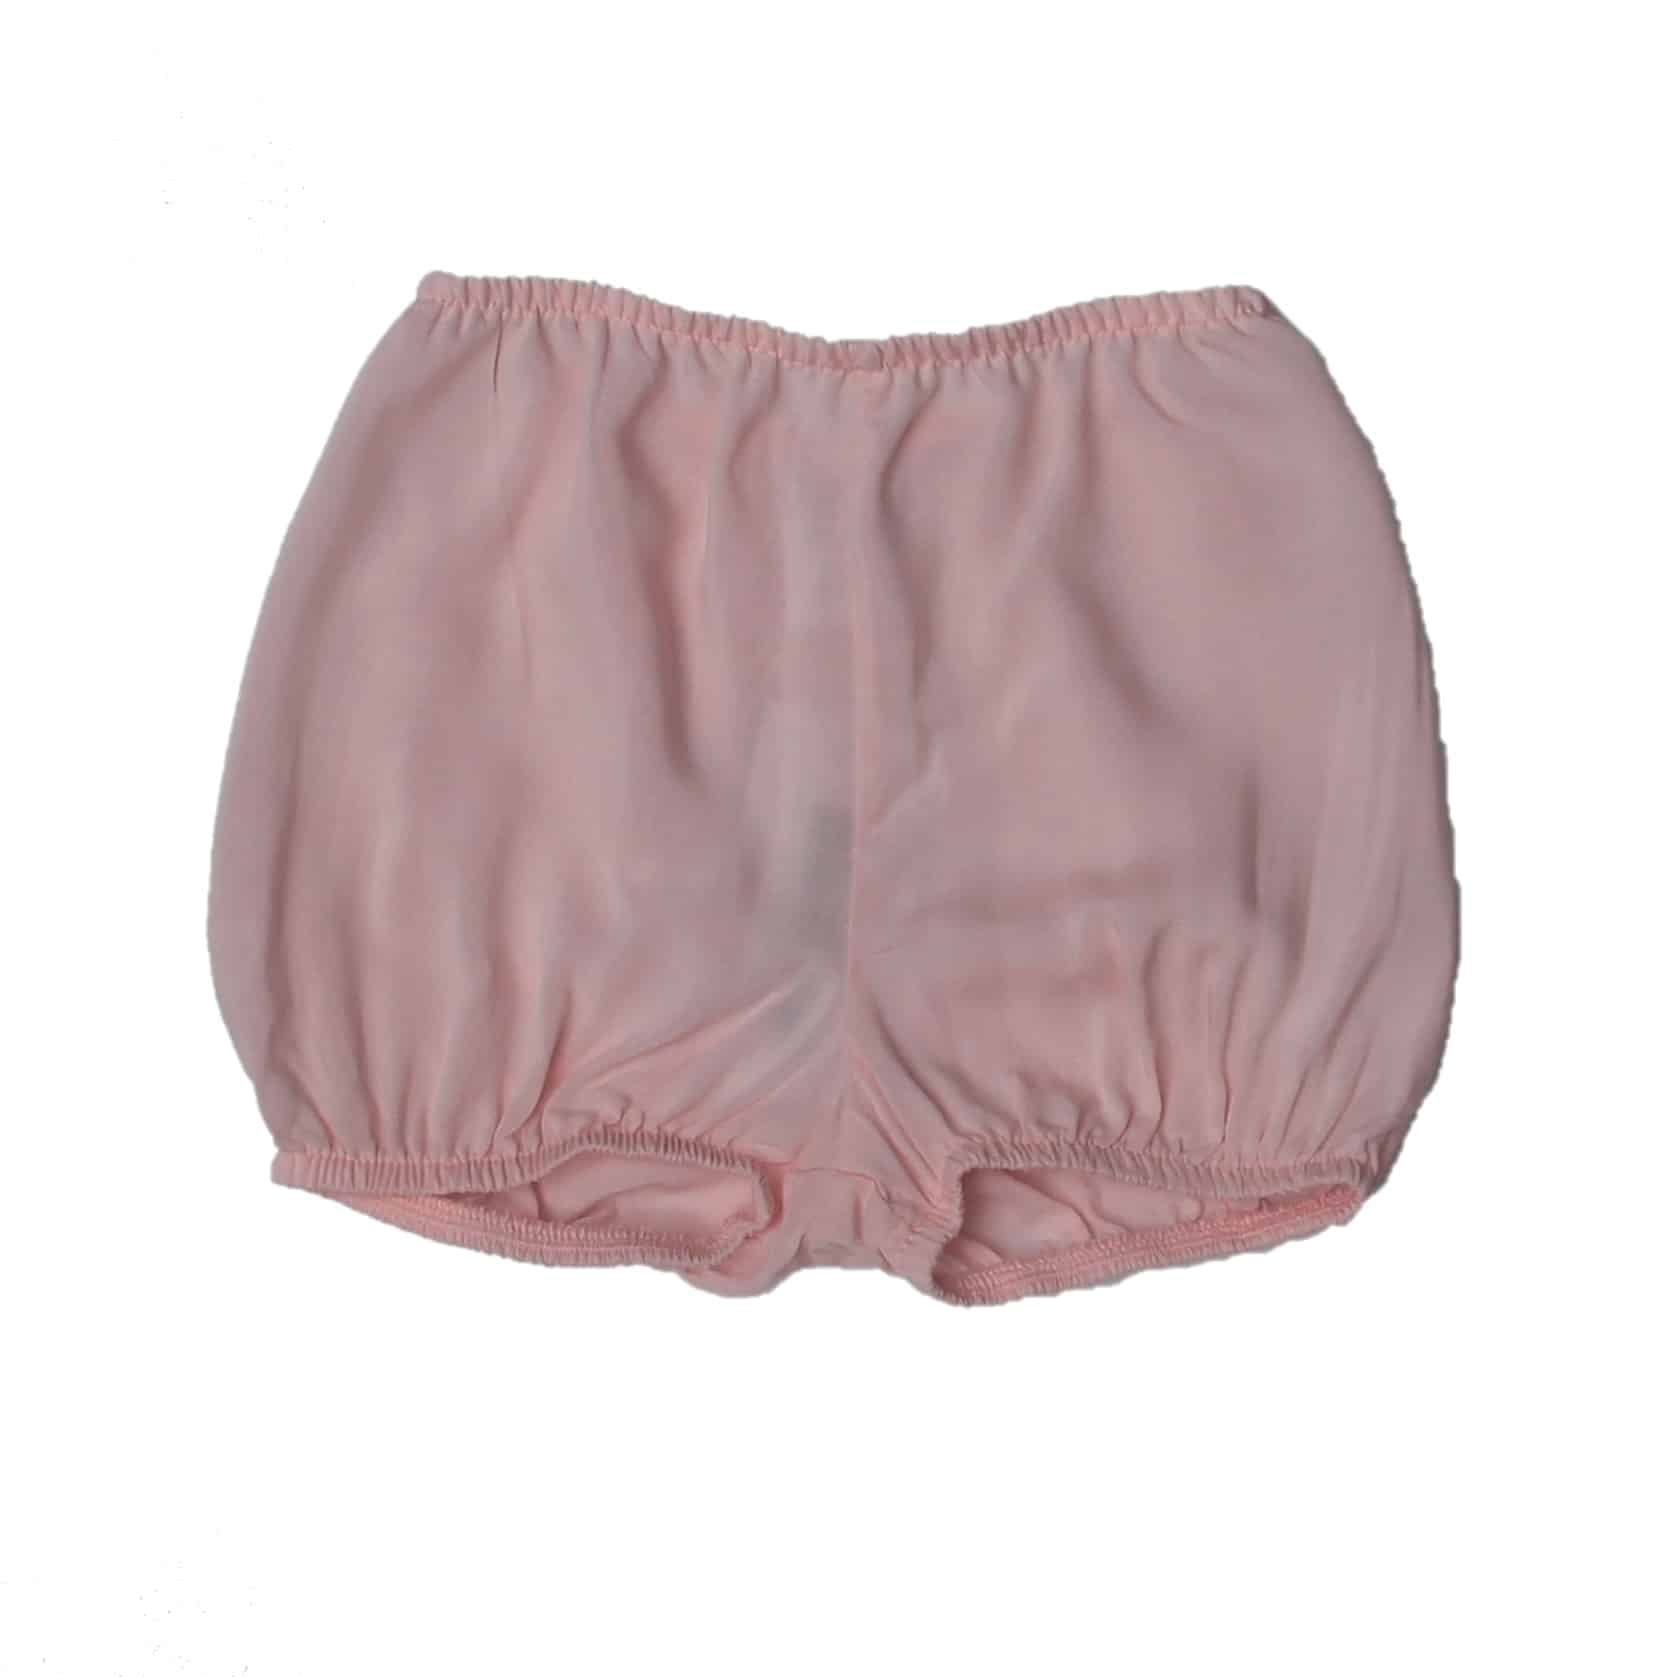 Diaper Cover Pink Just Chillin Baby Clothes Online South